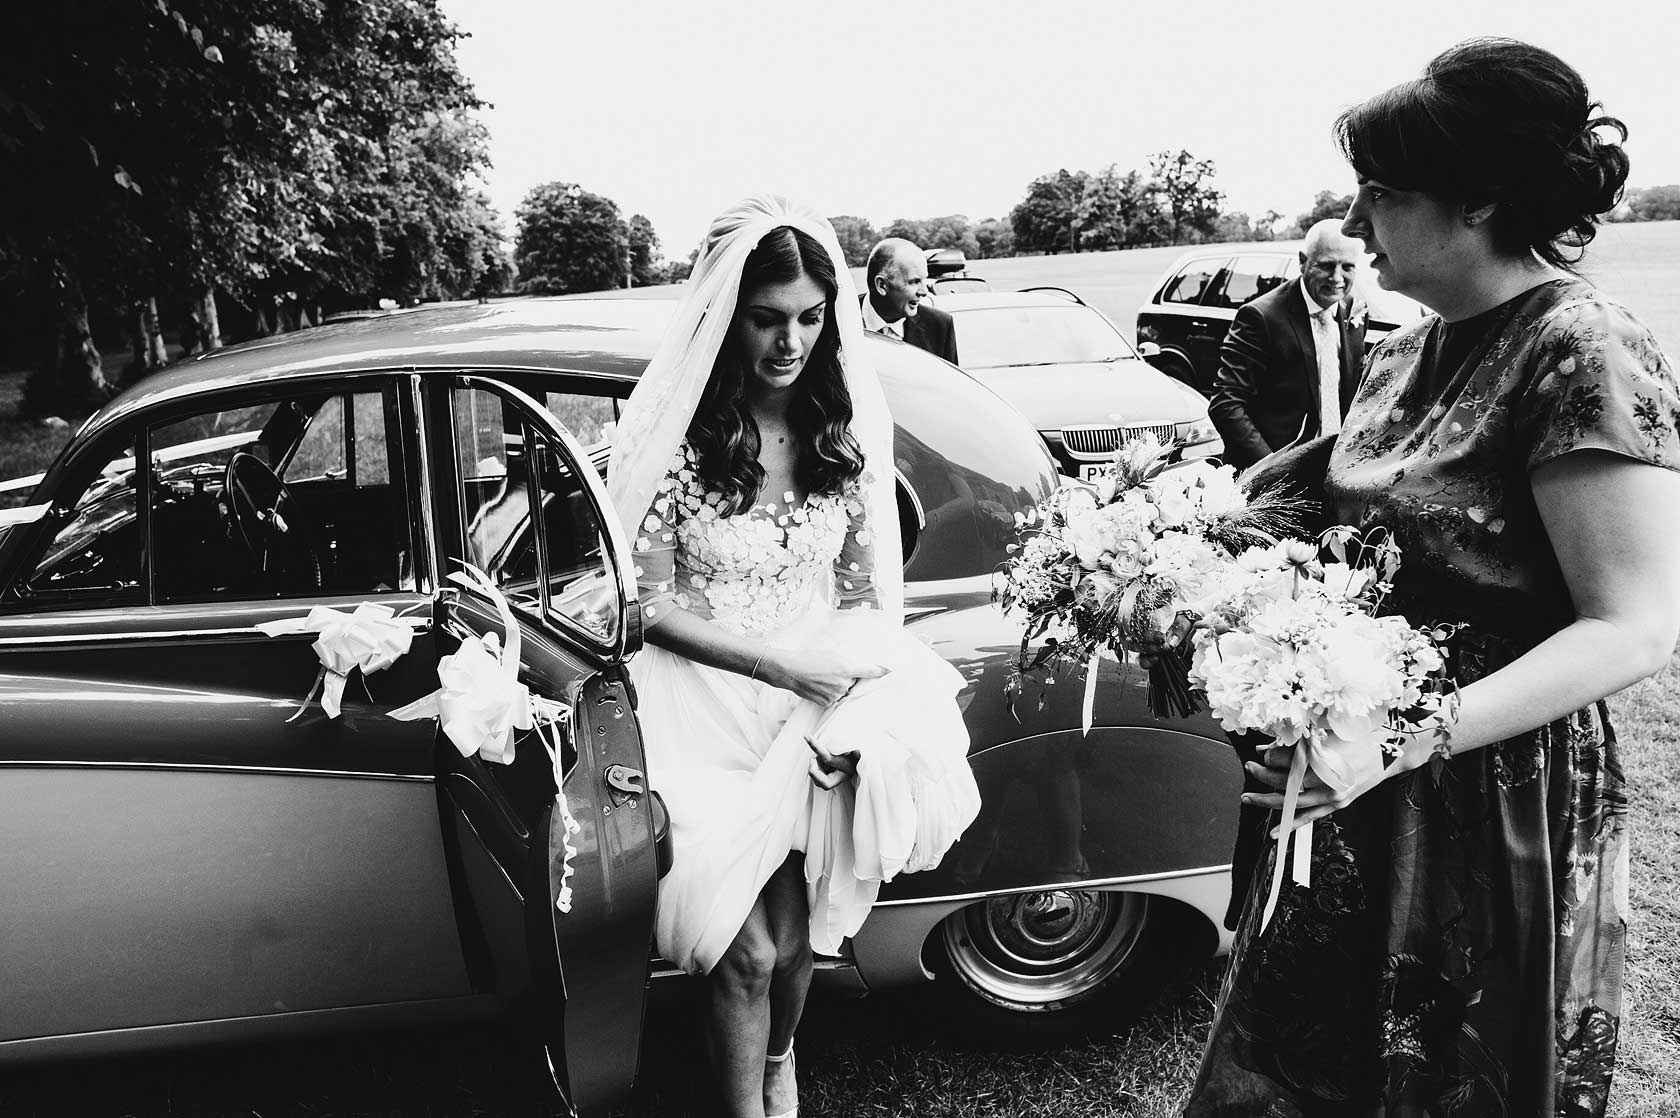 Reportage Wedding Photography in Thetford